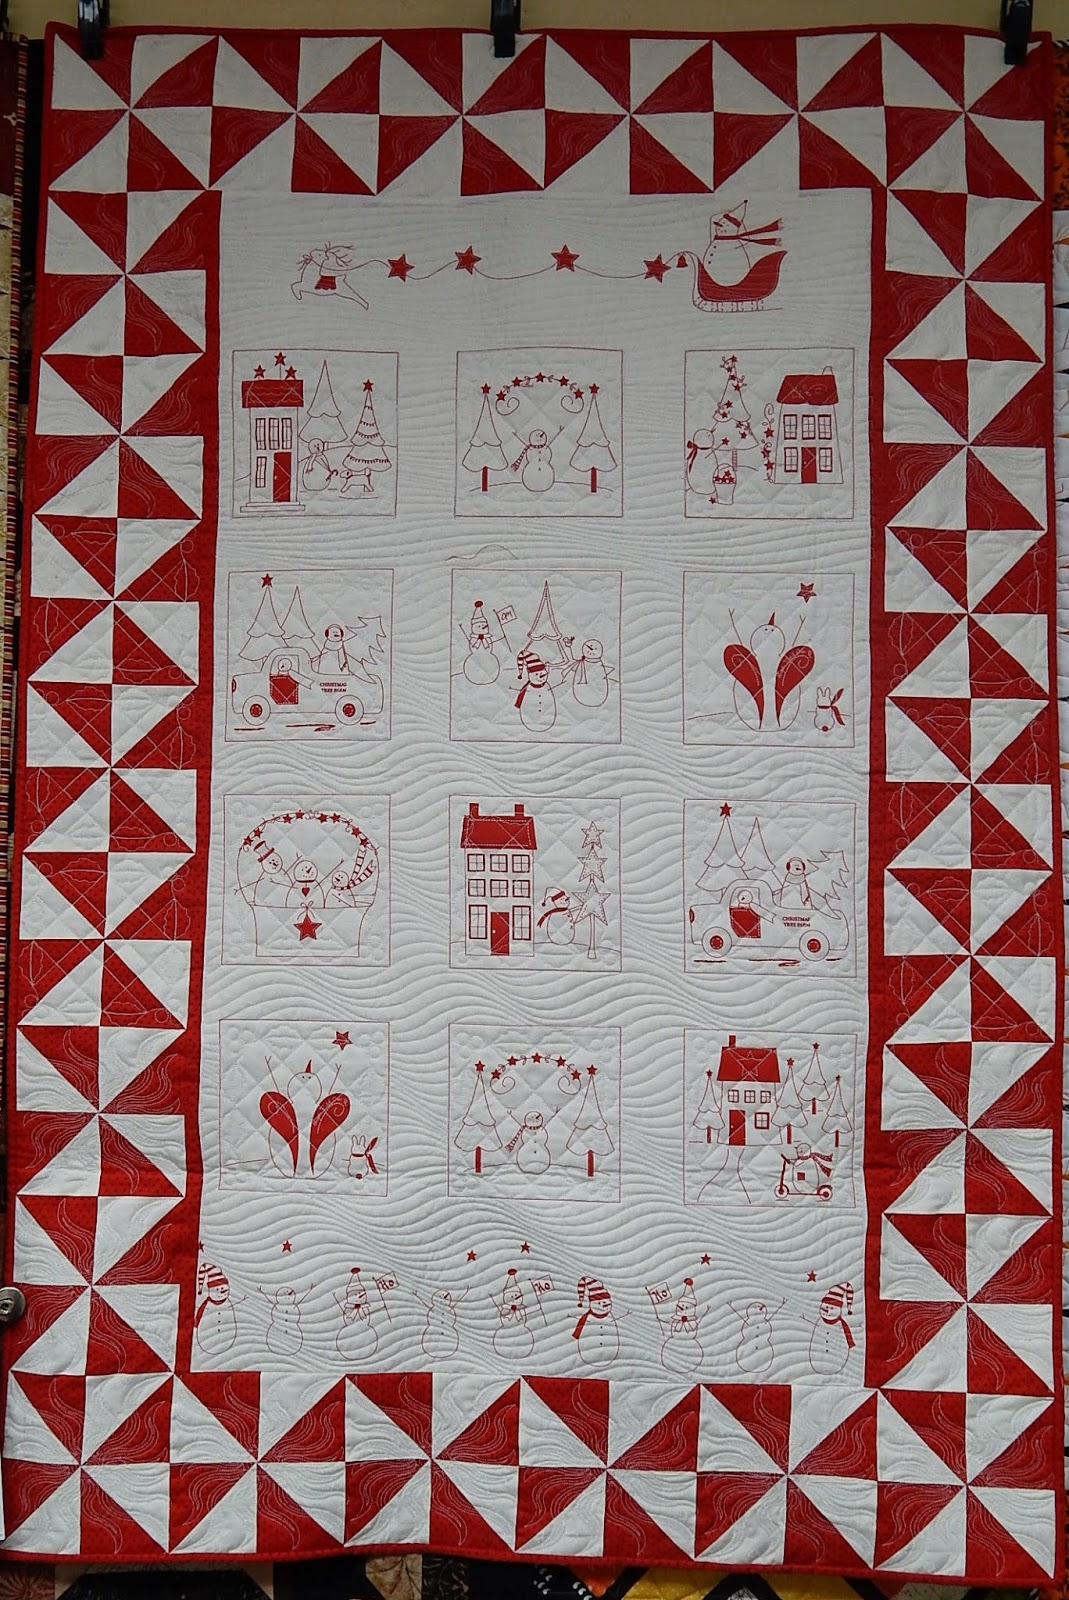 Quilting Blog - Cactus Needle Quilts, Fabric and More: Winter ... : winter wonderland quilt - Adamdwight.com